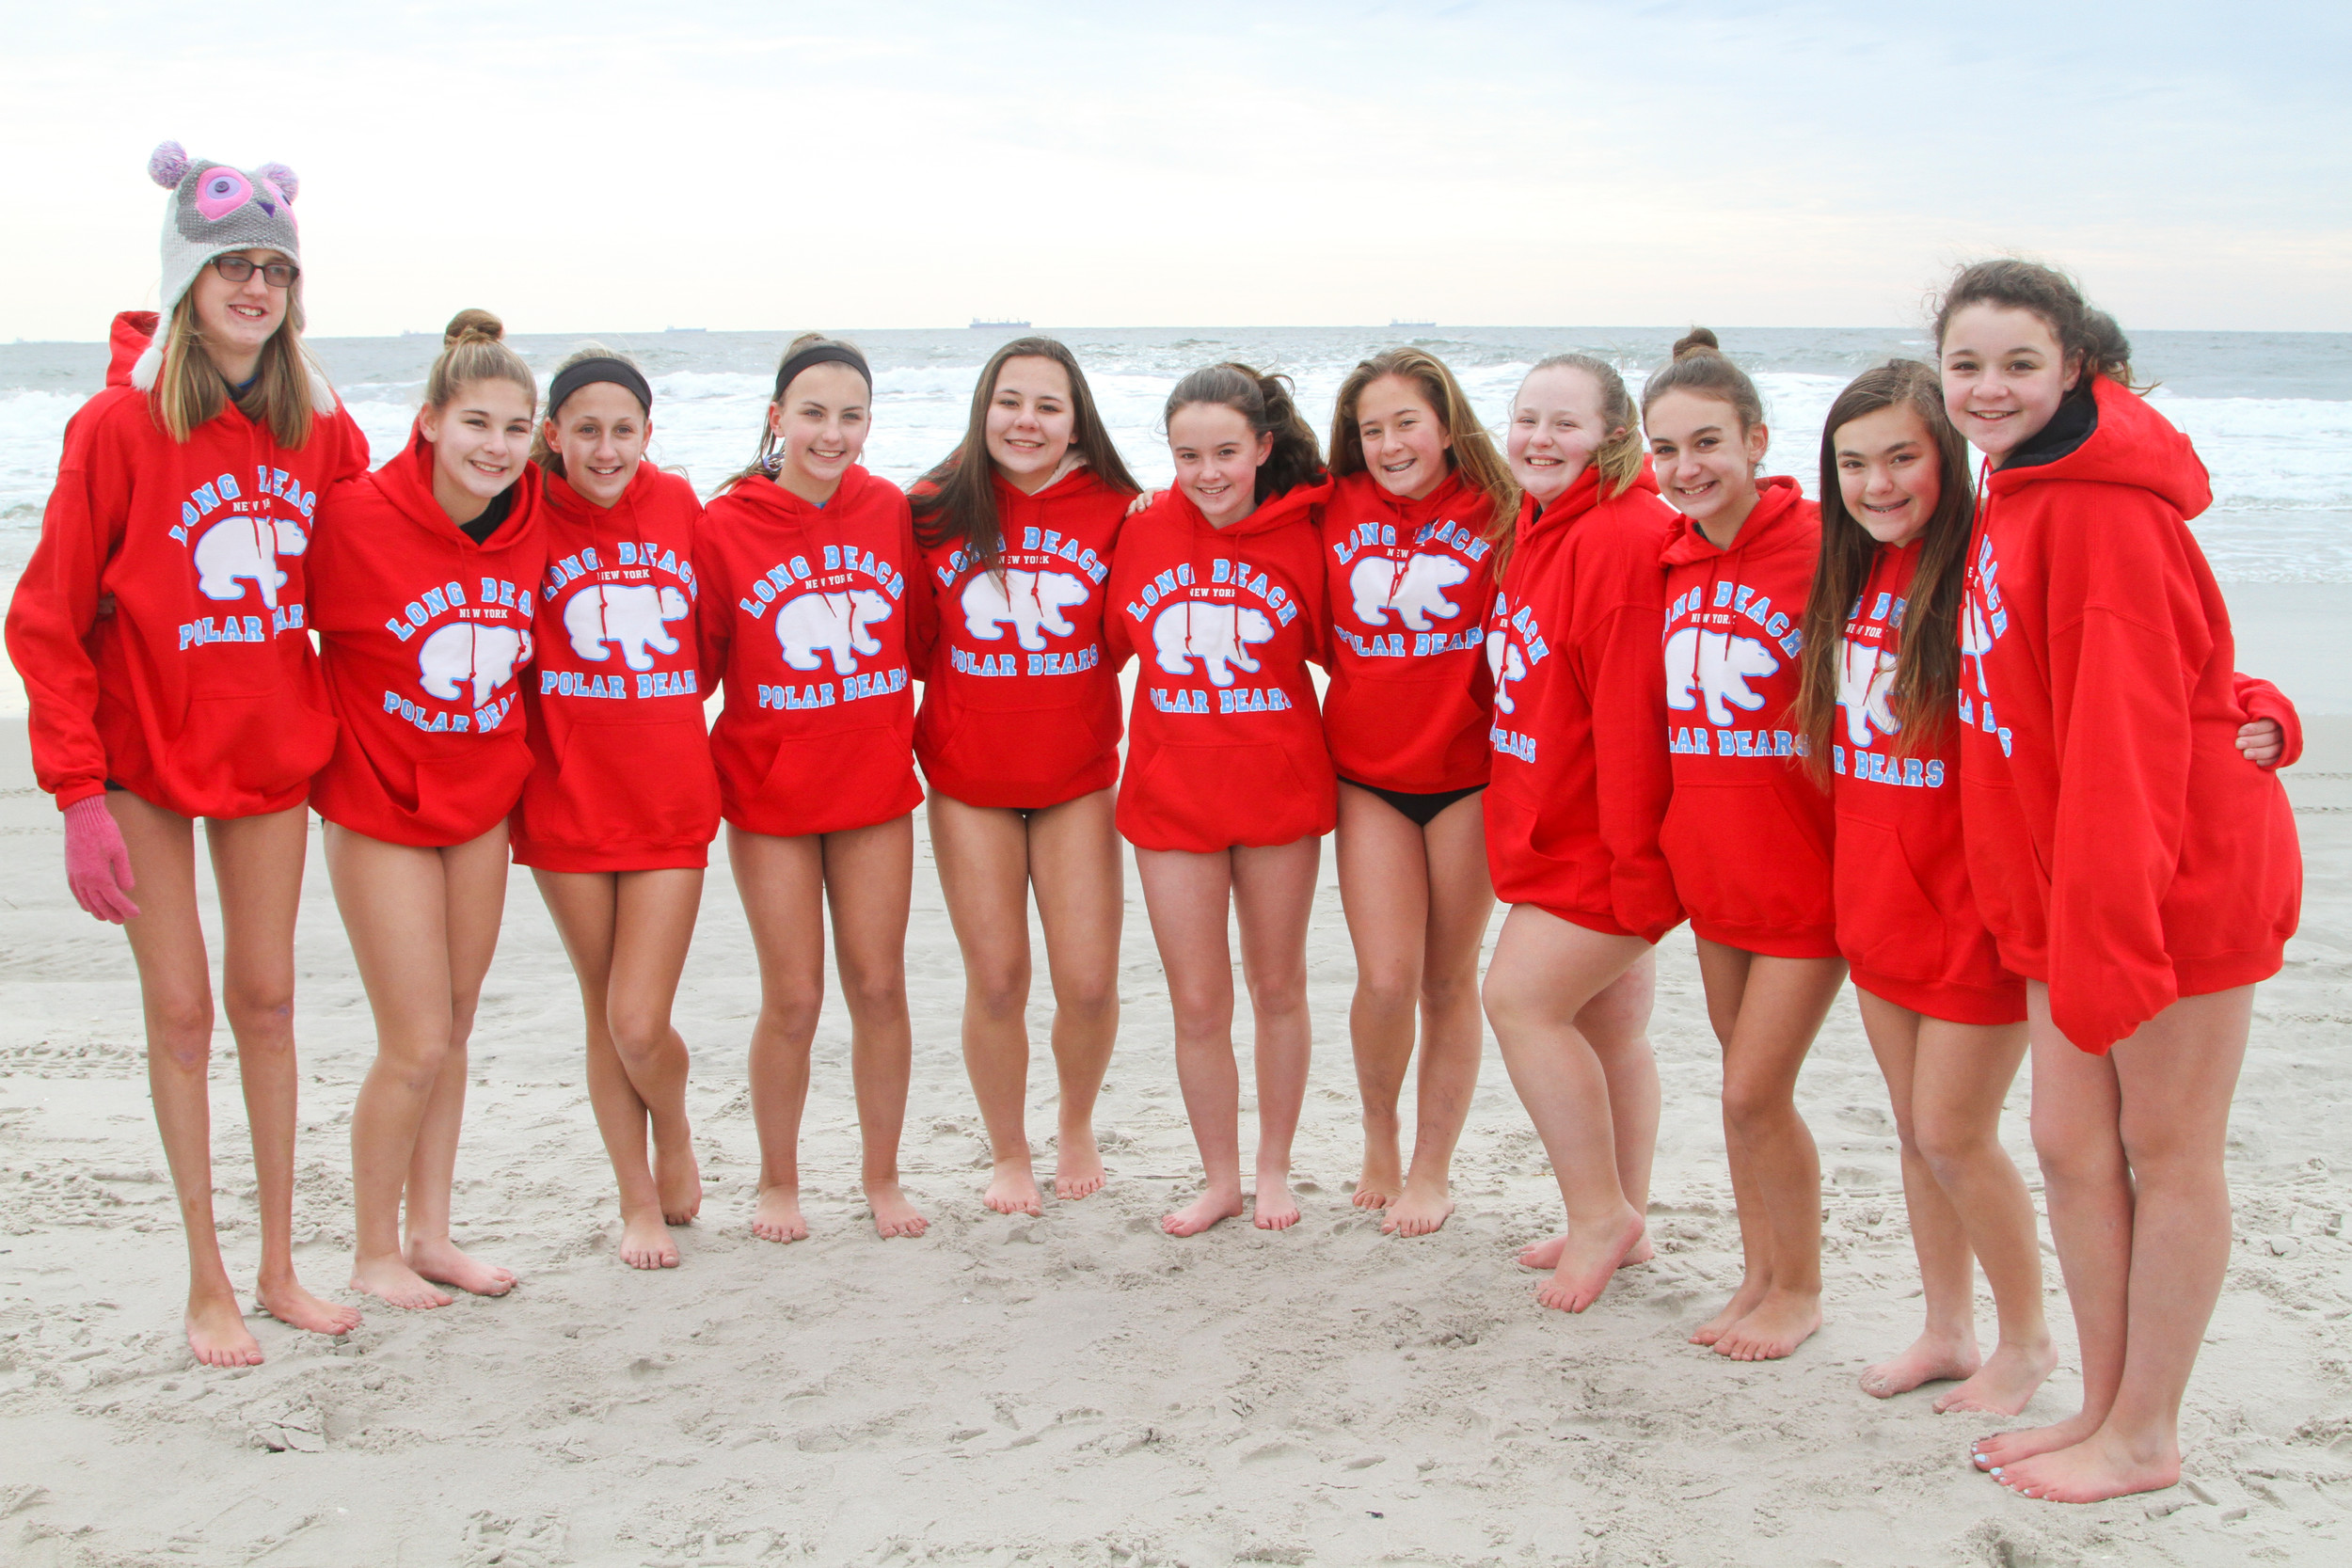 A group from West Islip showed off this year's sweatshirts.